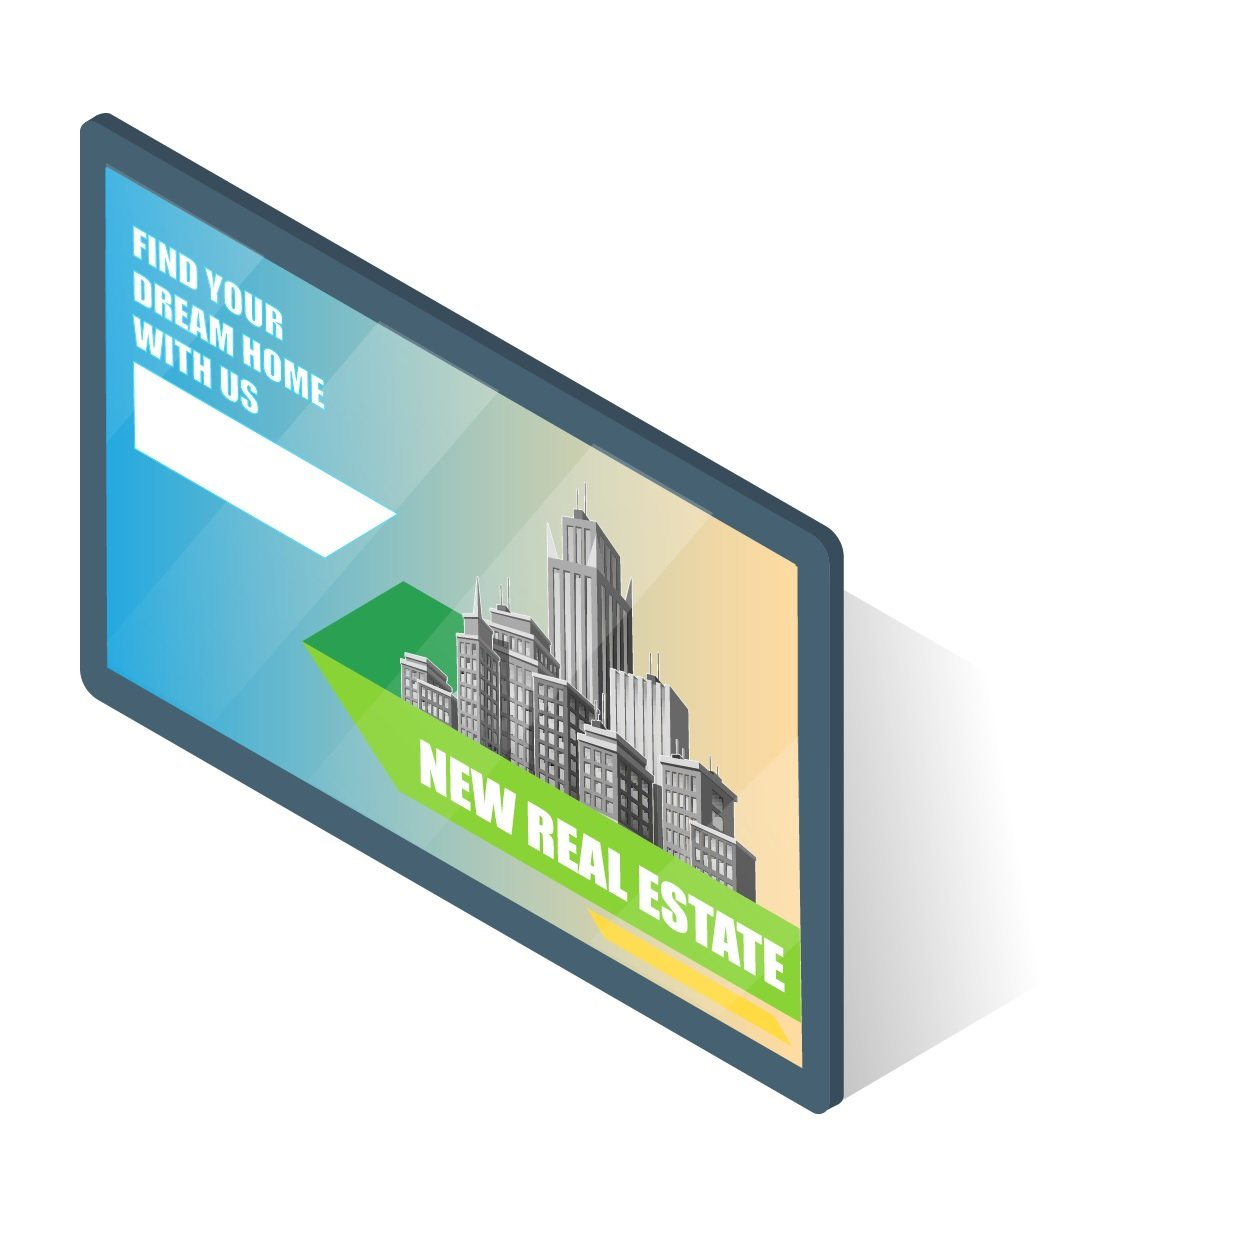 PowerPoint Design Agency converting to digital signage